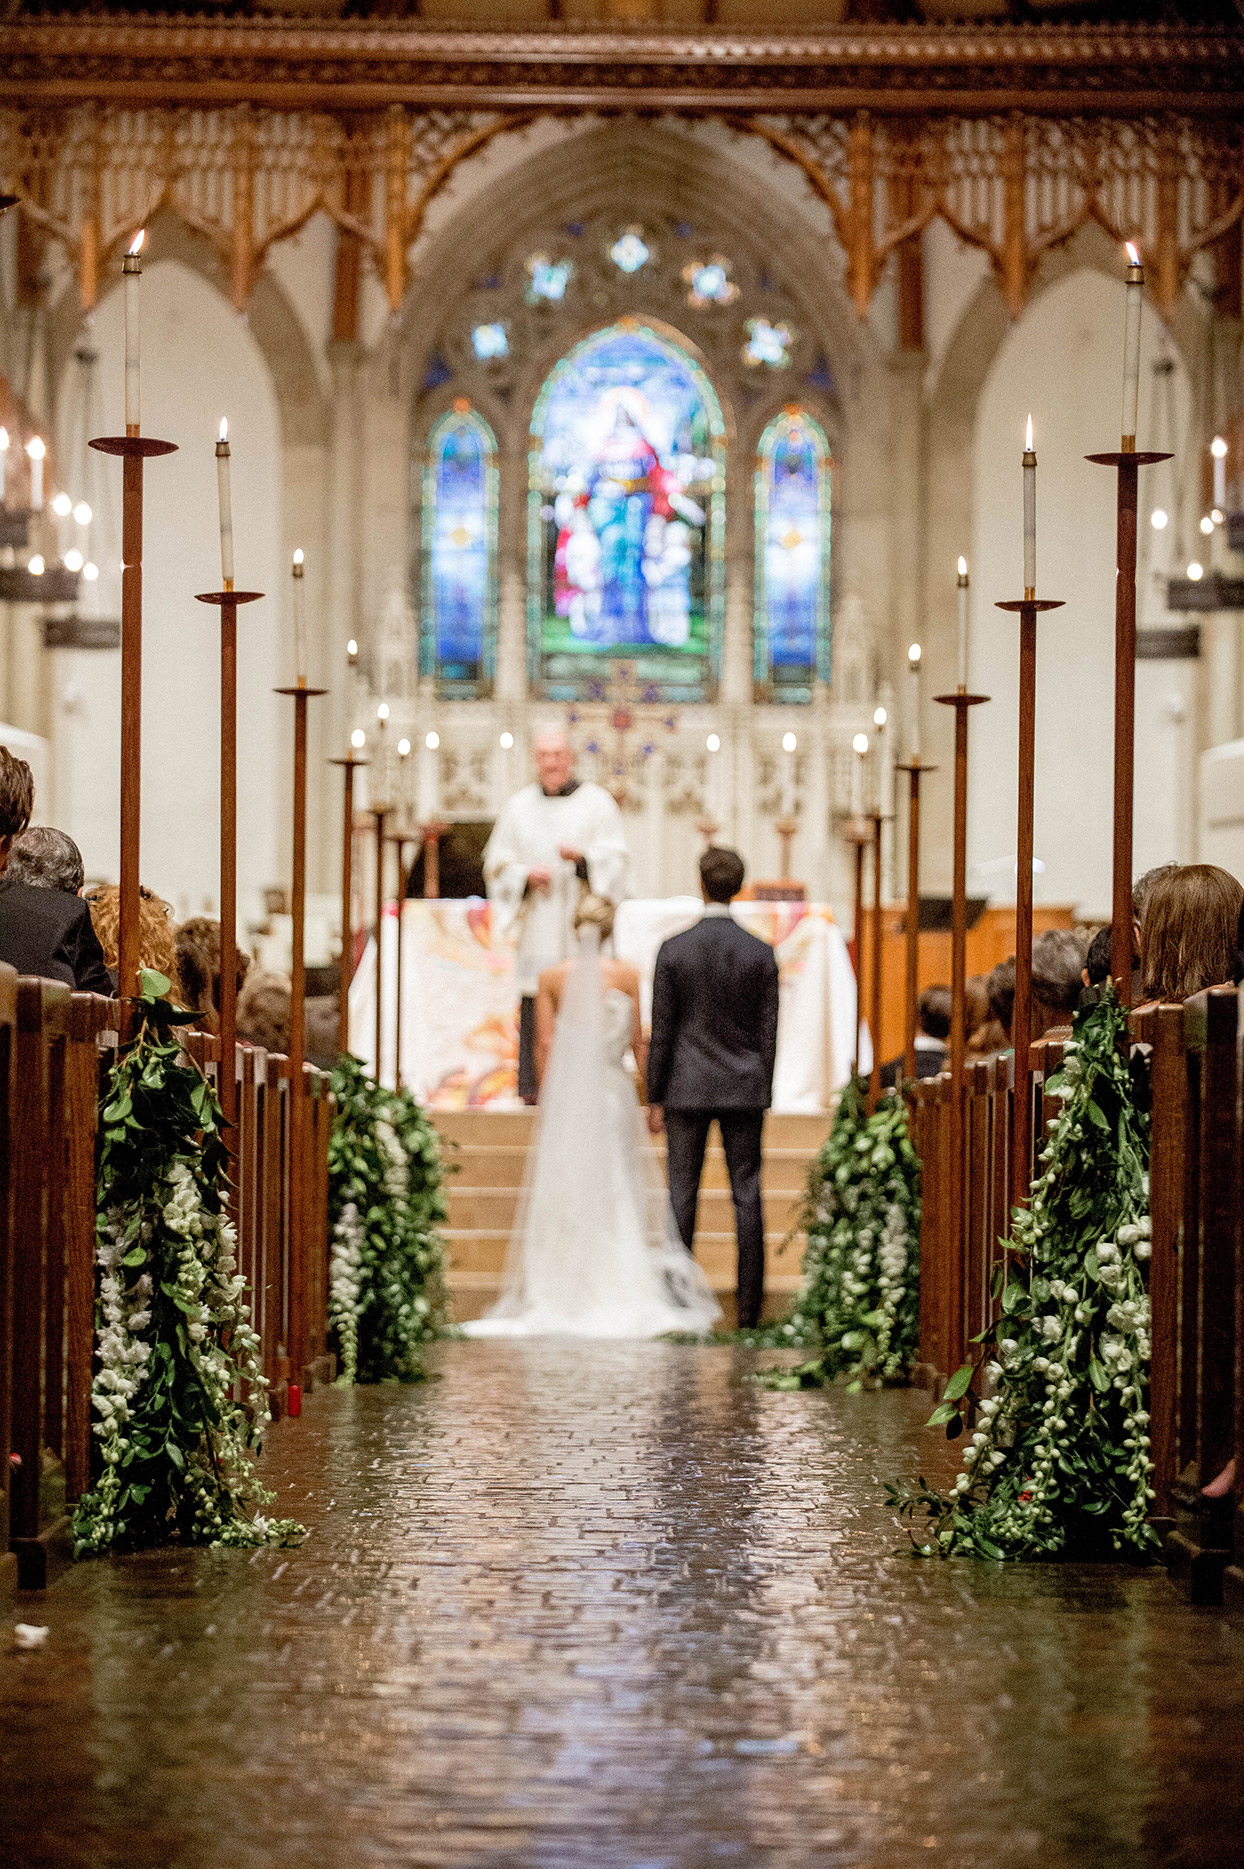 couple standing at altar inside traditional church